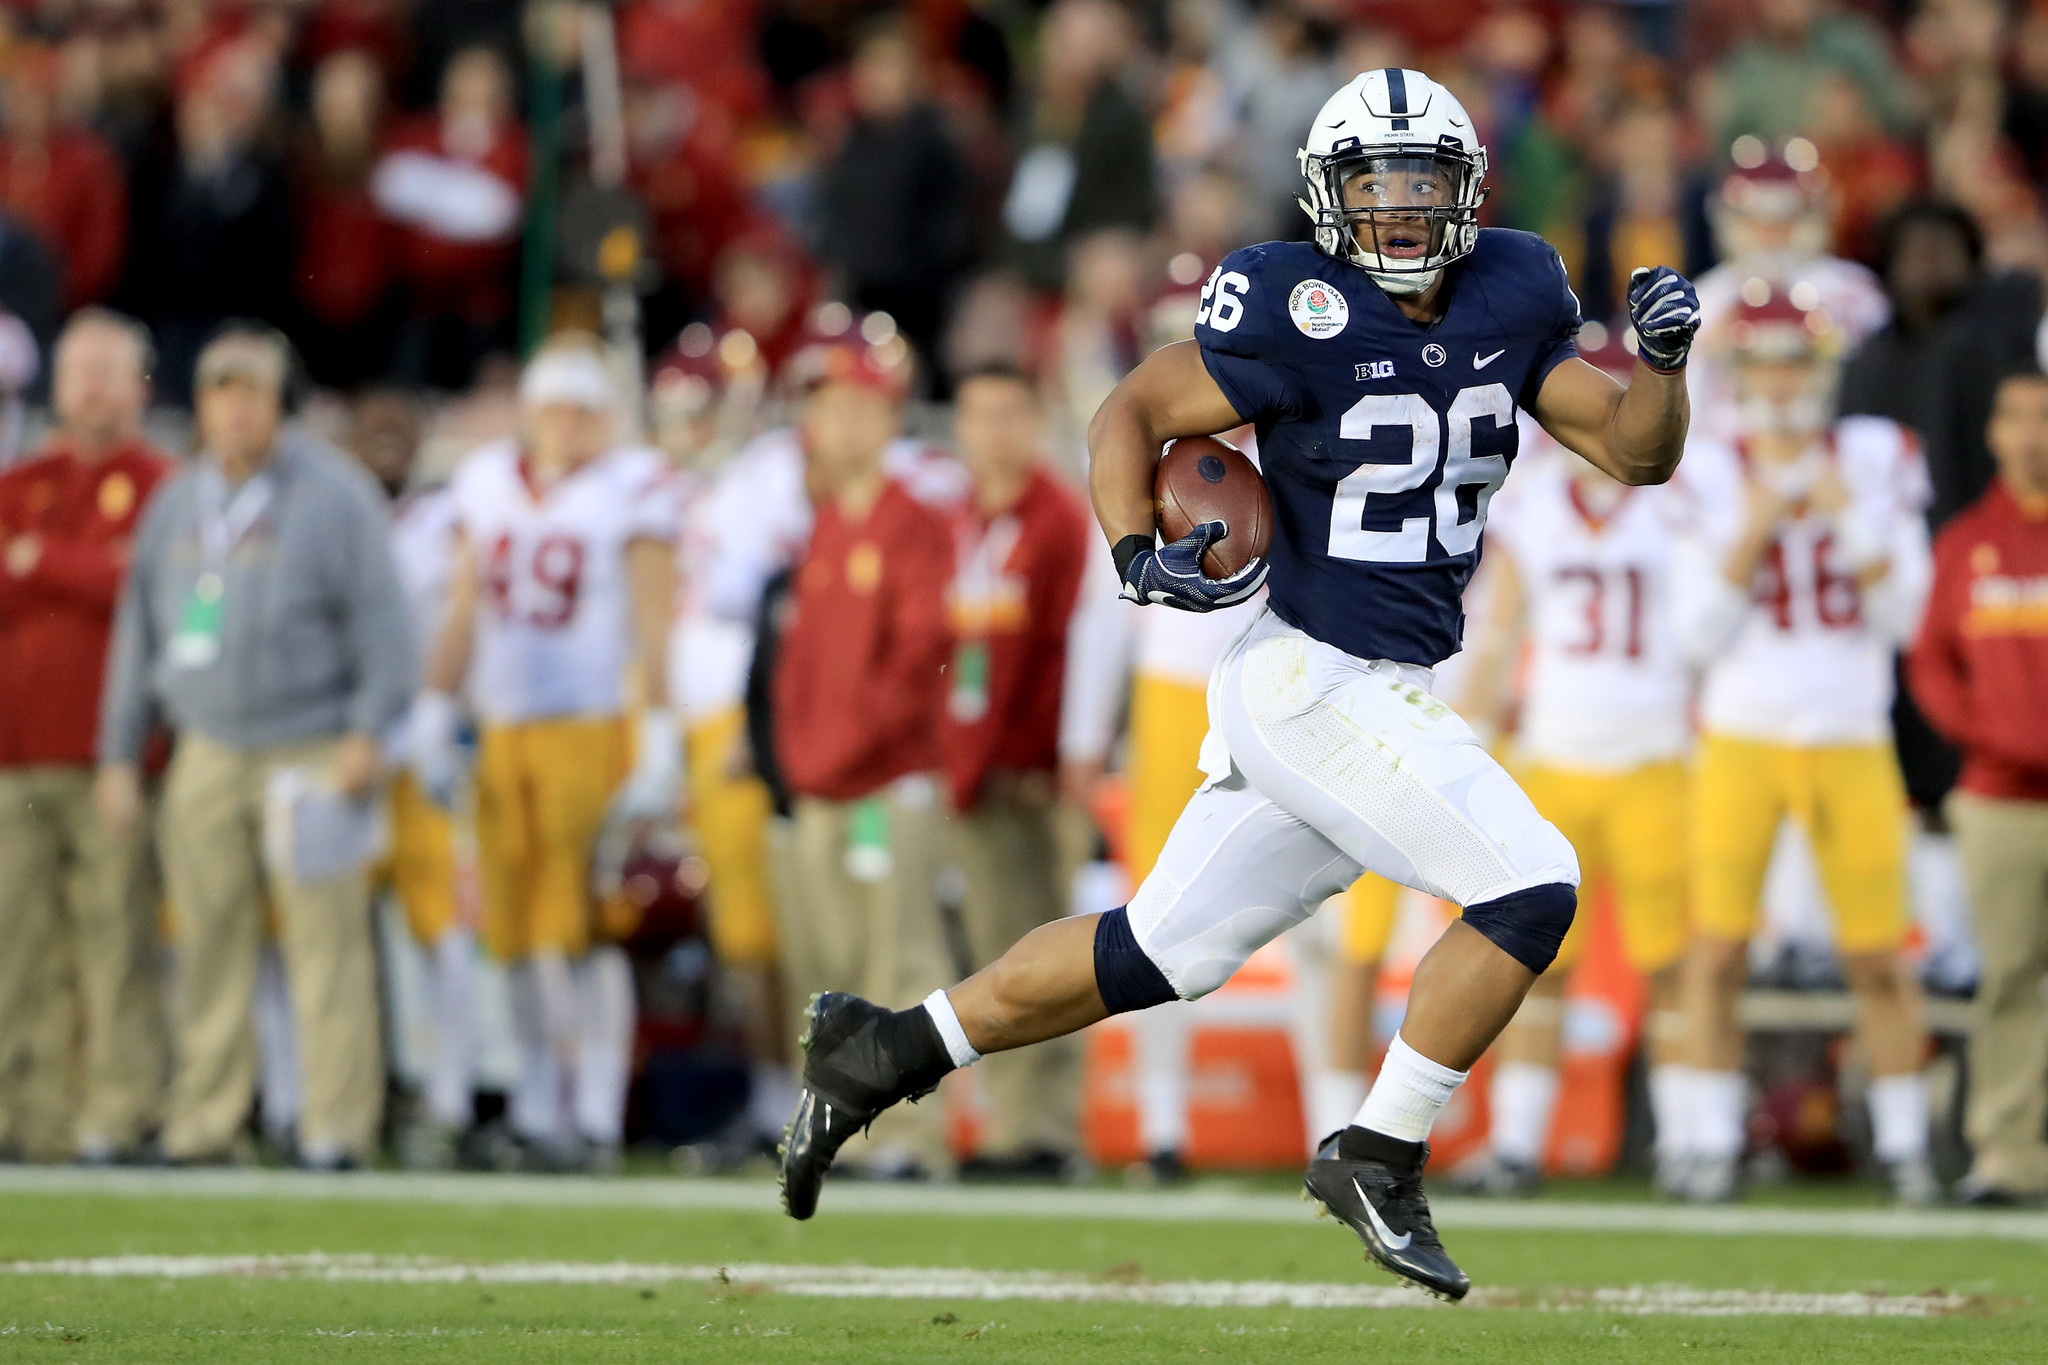 Saquon Barkley: Best NFL running back prospect in a decade ...